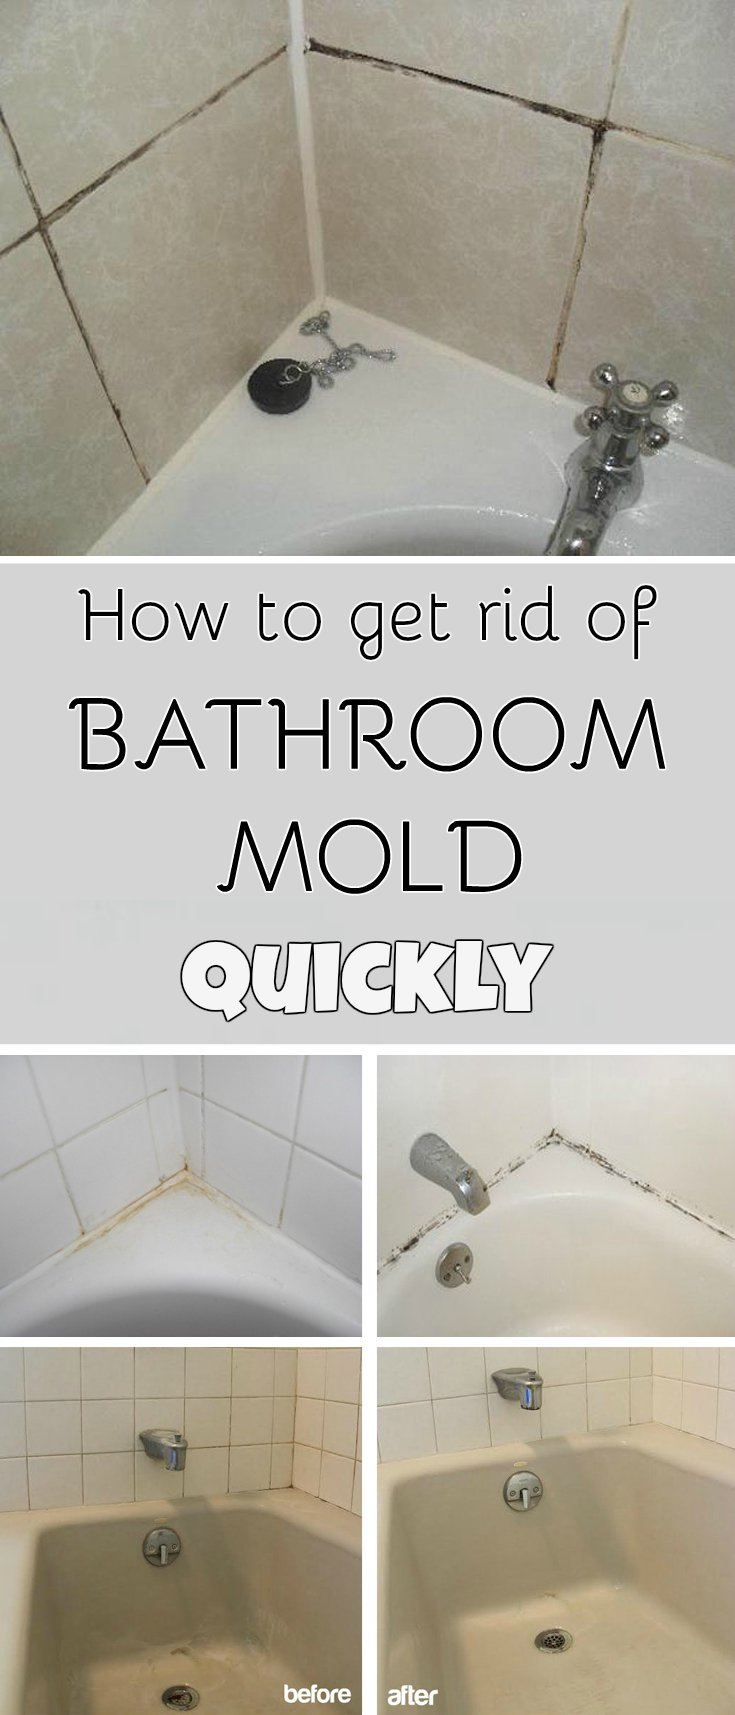 How To Get Rid Of Bathroom Mold Quickly